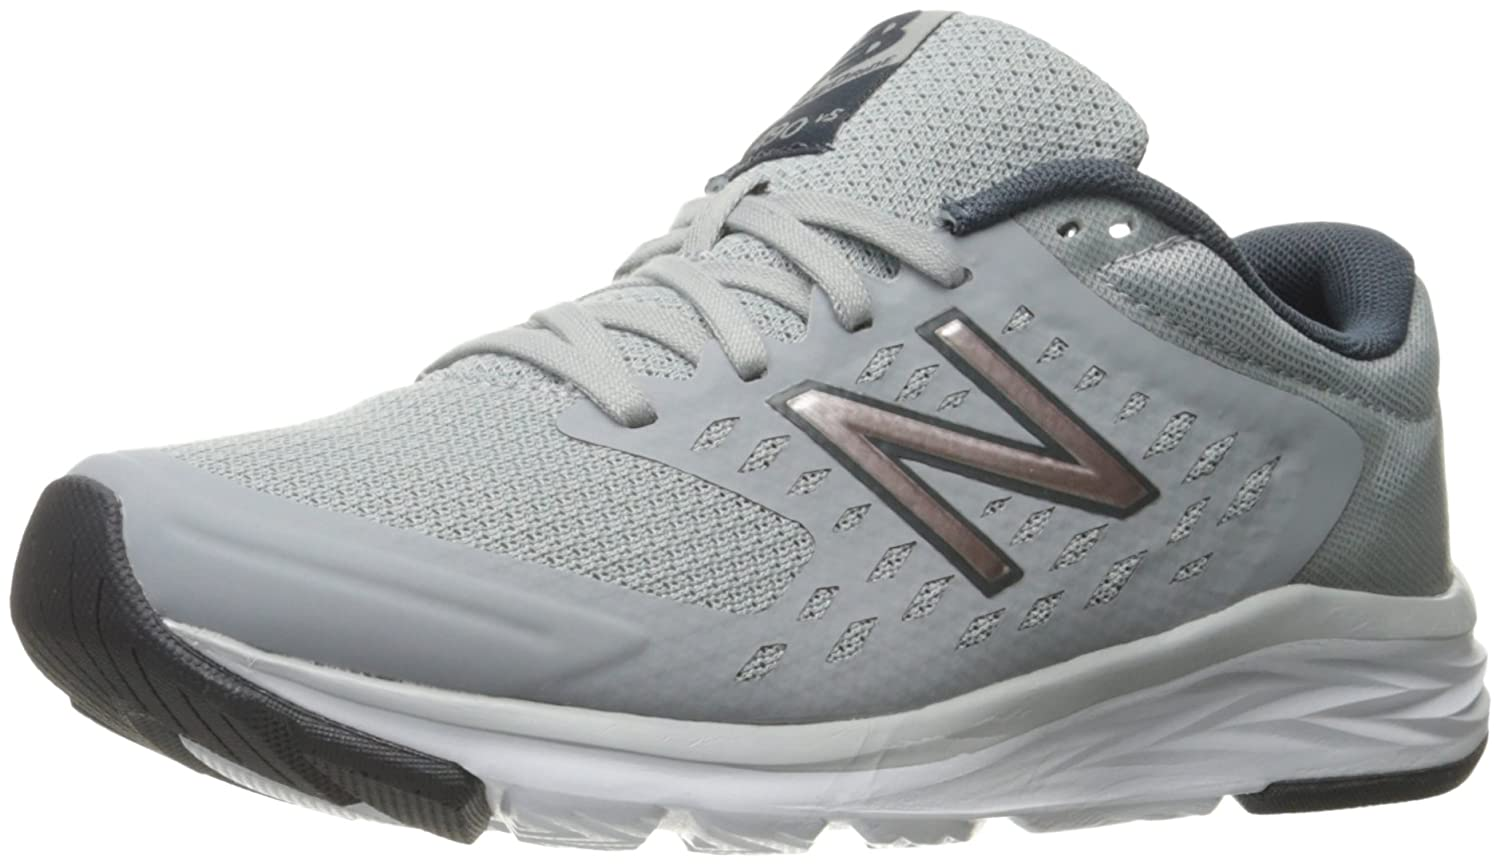 New Balance Women's 490V5 Running Shoe B01N55353D 9.5 B(M) US|Silver Mink/Thunder